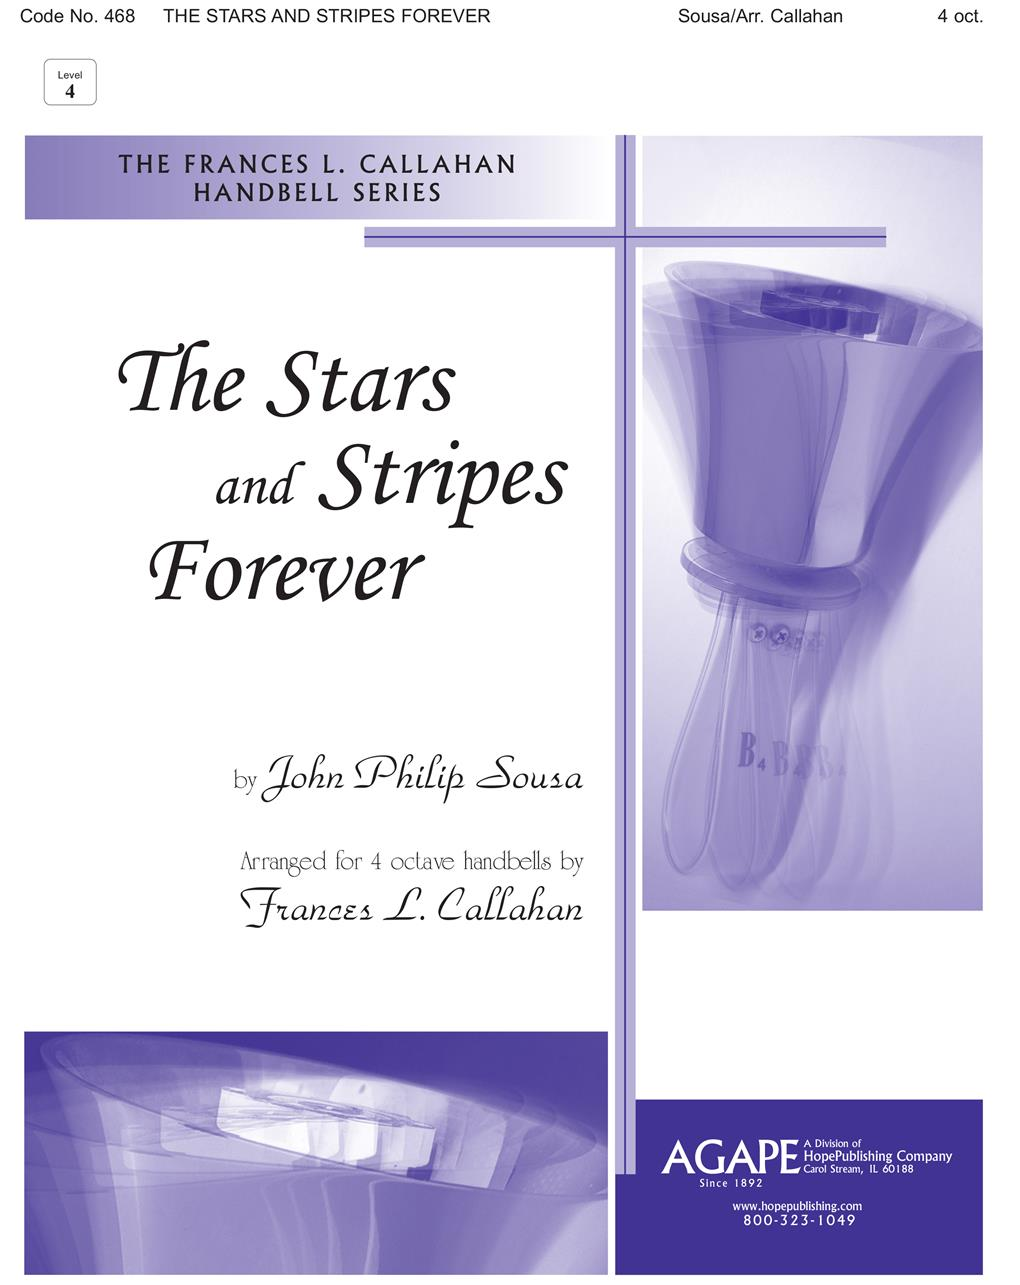 Stars and Stripes Forever The - 4 Oct. Cover Image